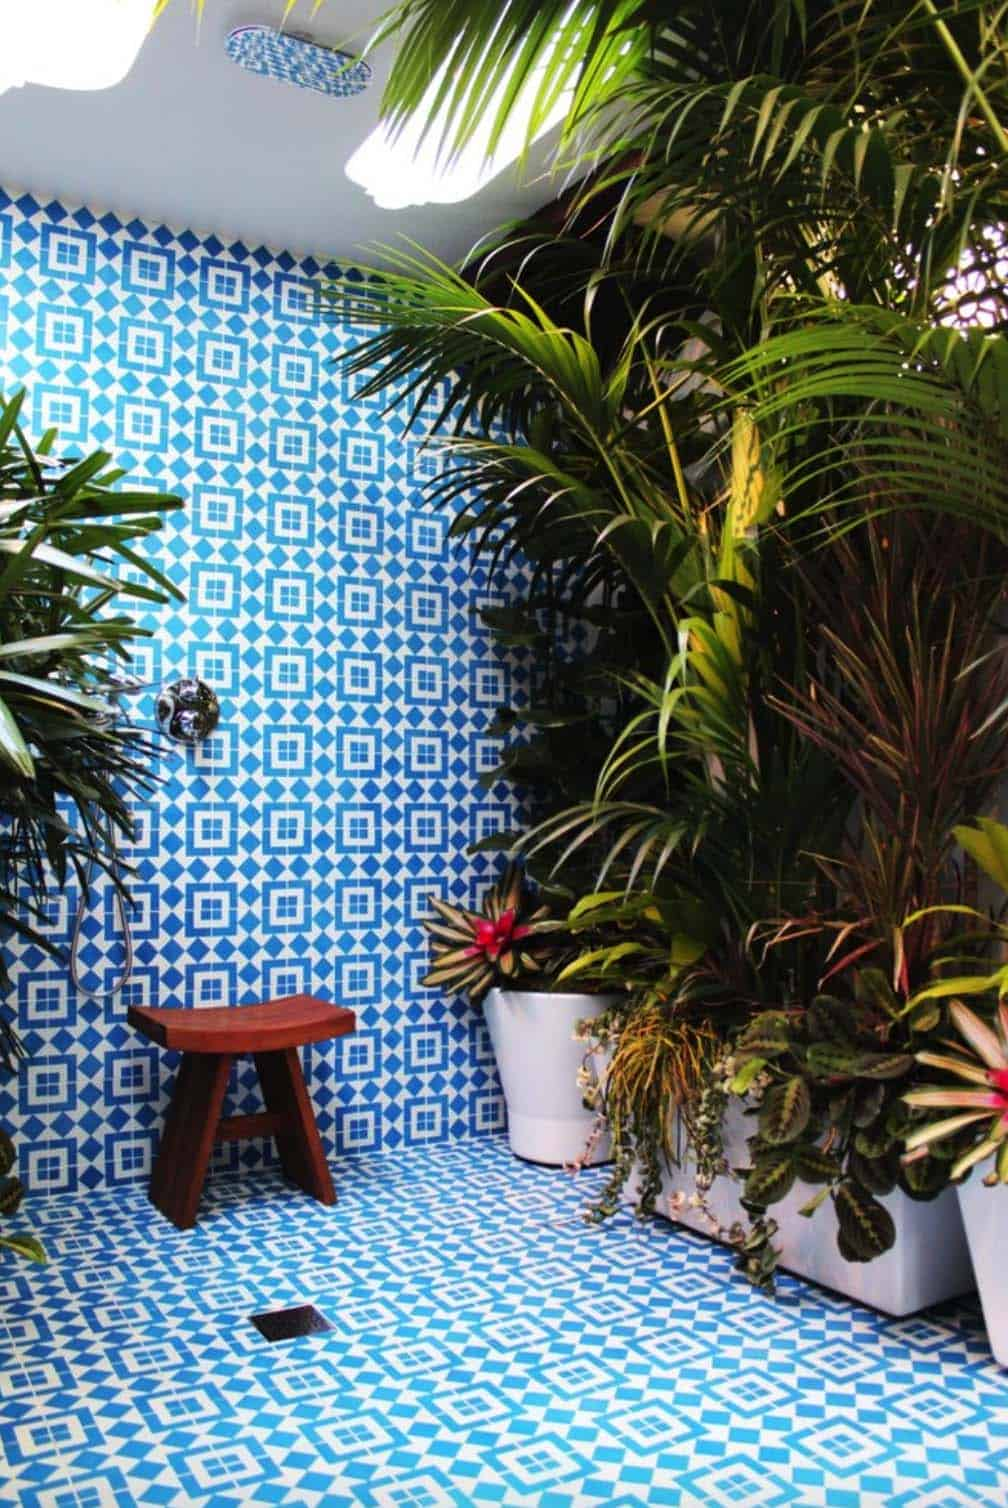 Inspiring Bathrooms Integrating Lush Gardens-03-1 Kindesign